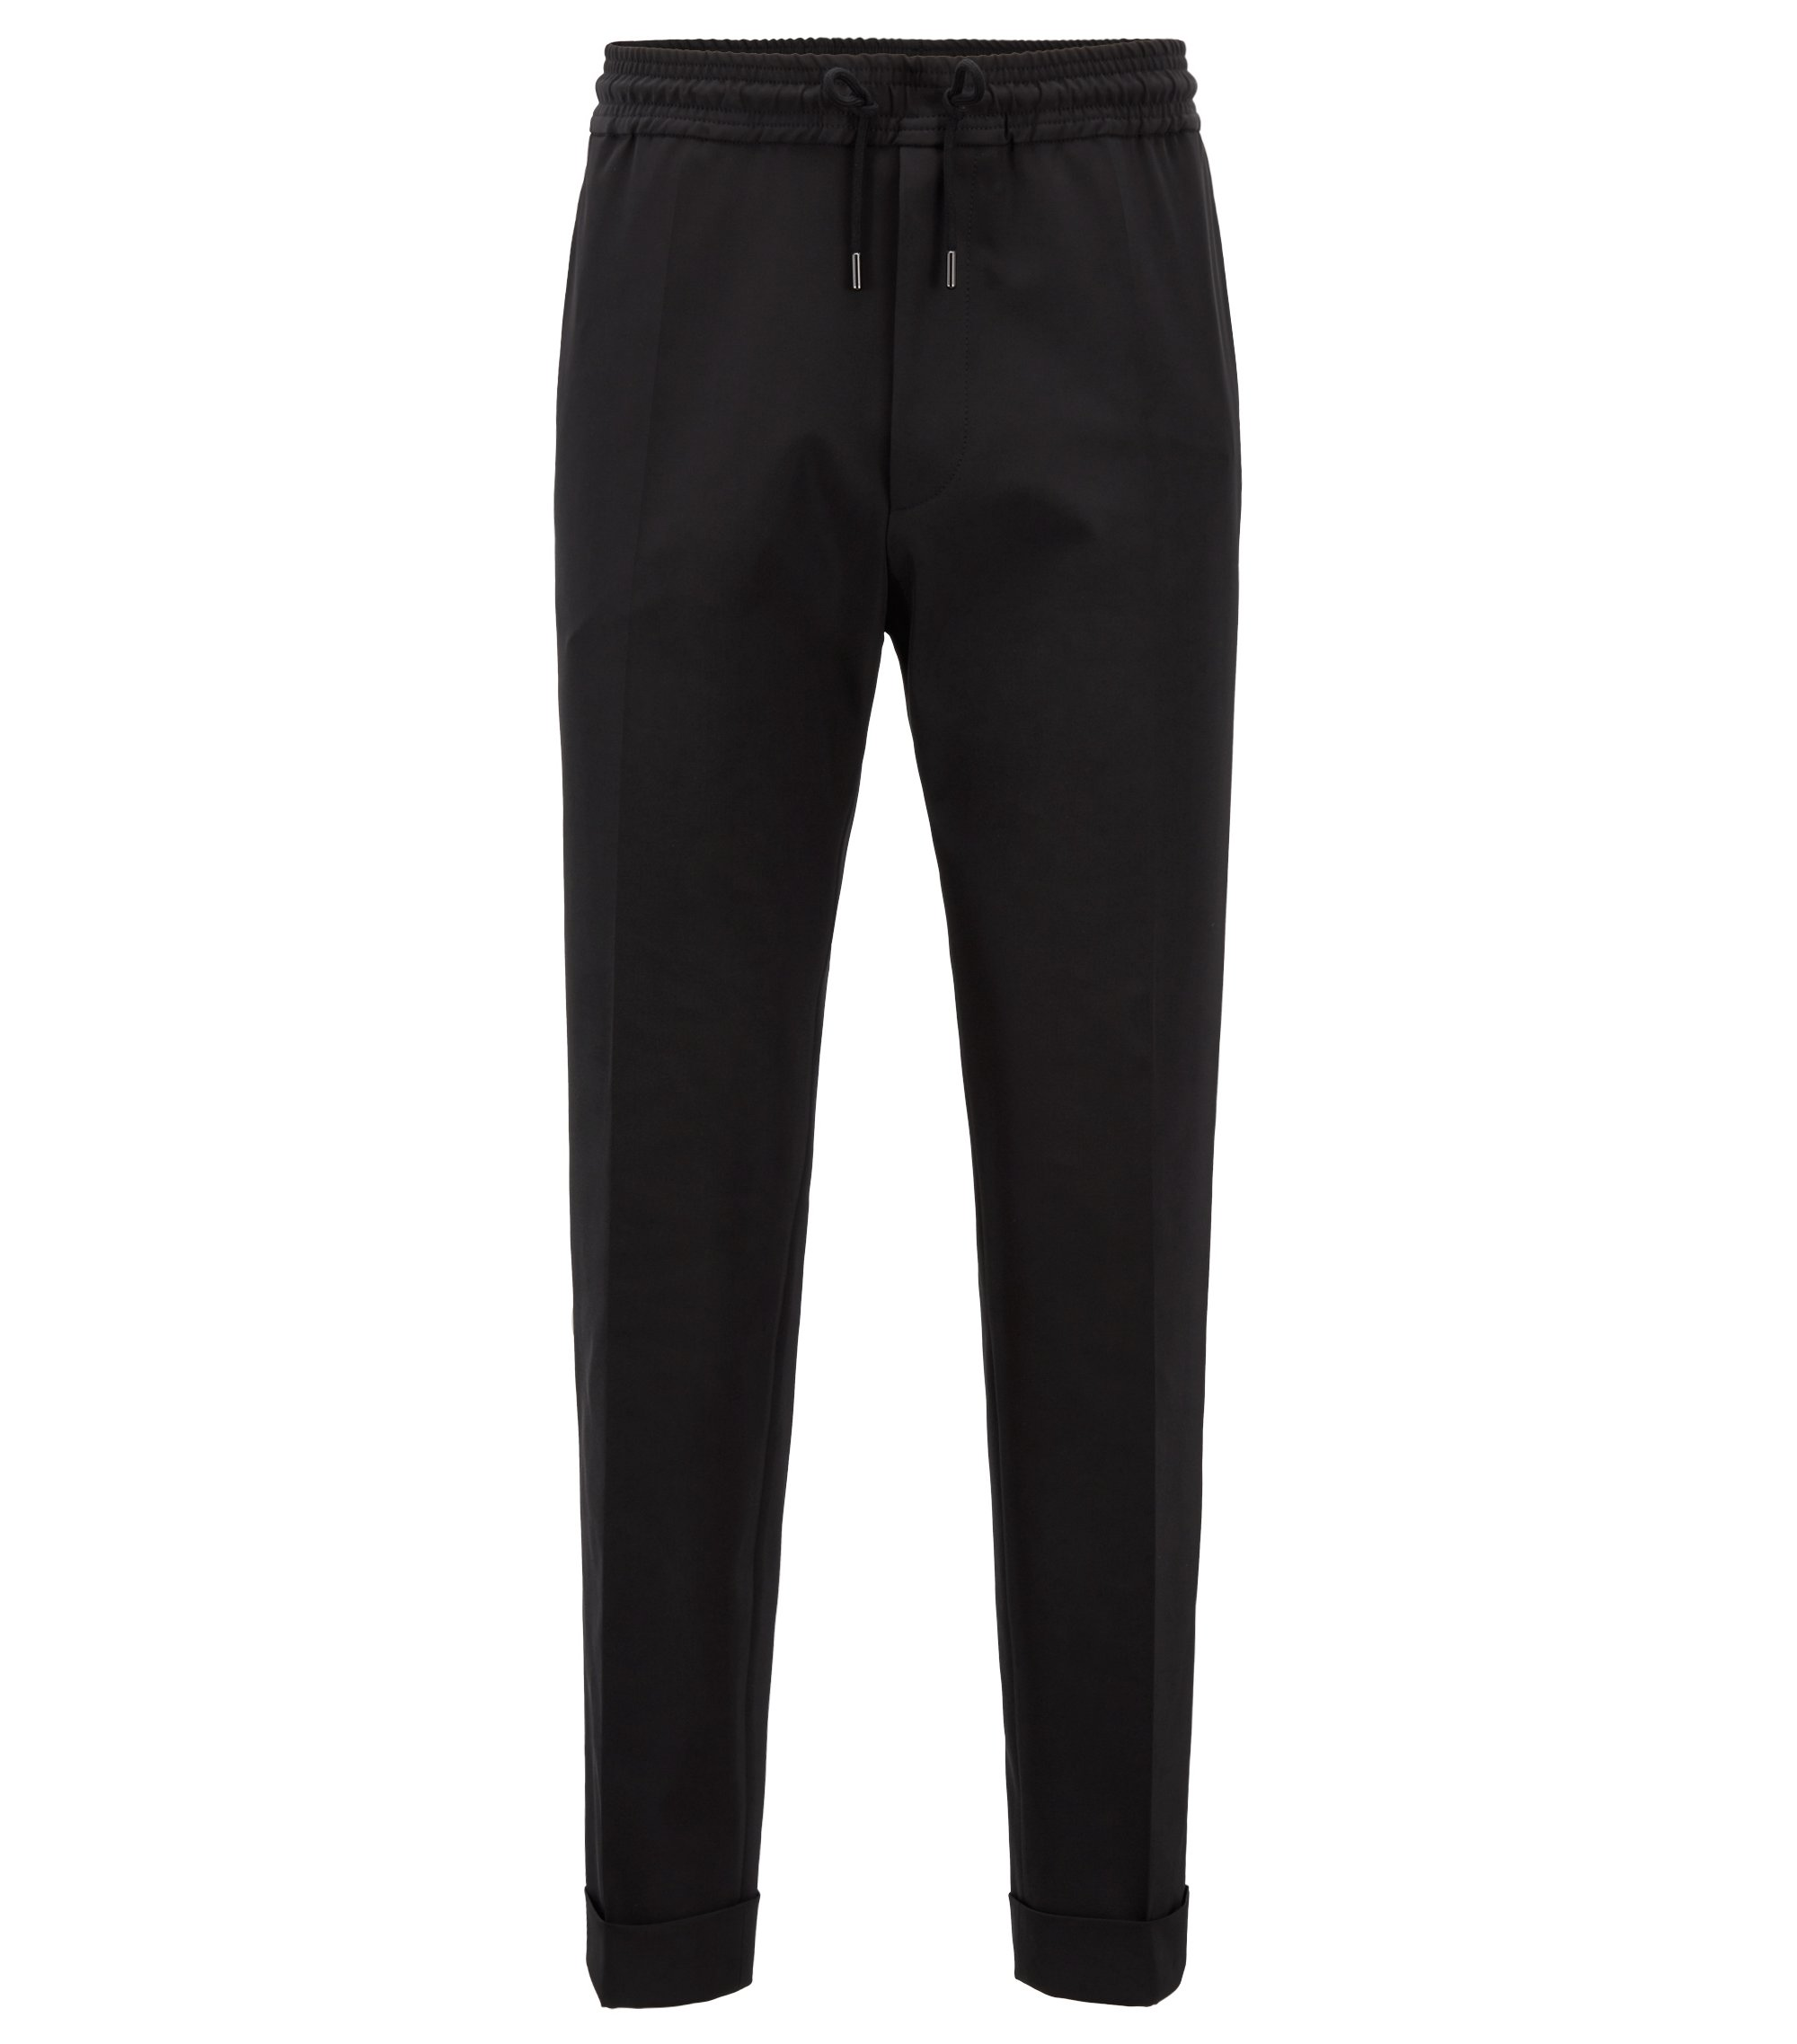 Relaxed-fit cropped trousers with drawstring waist, Black